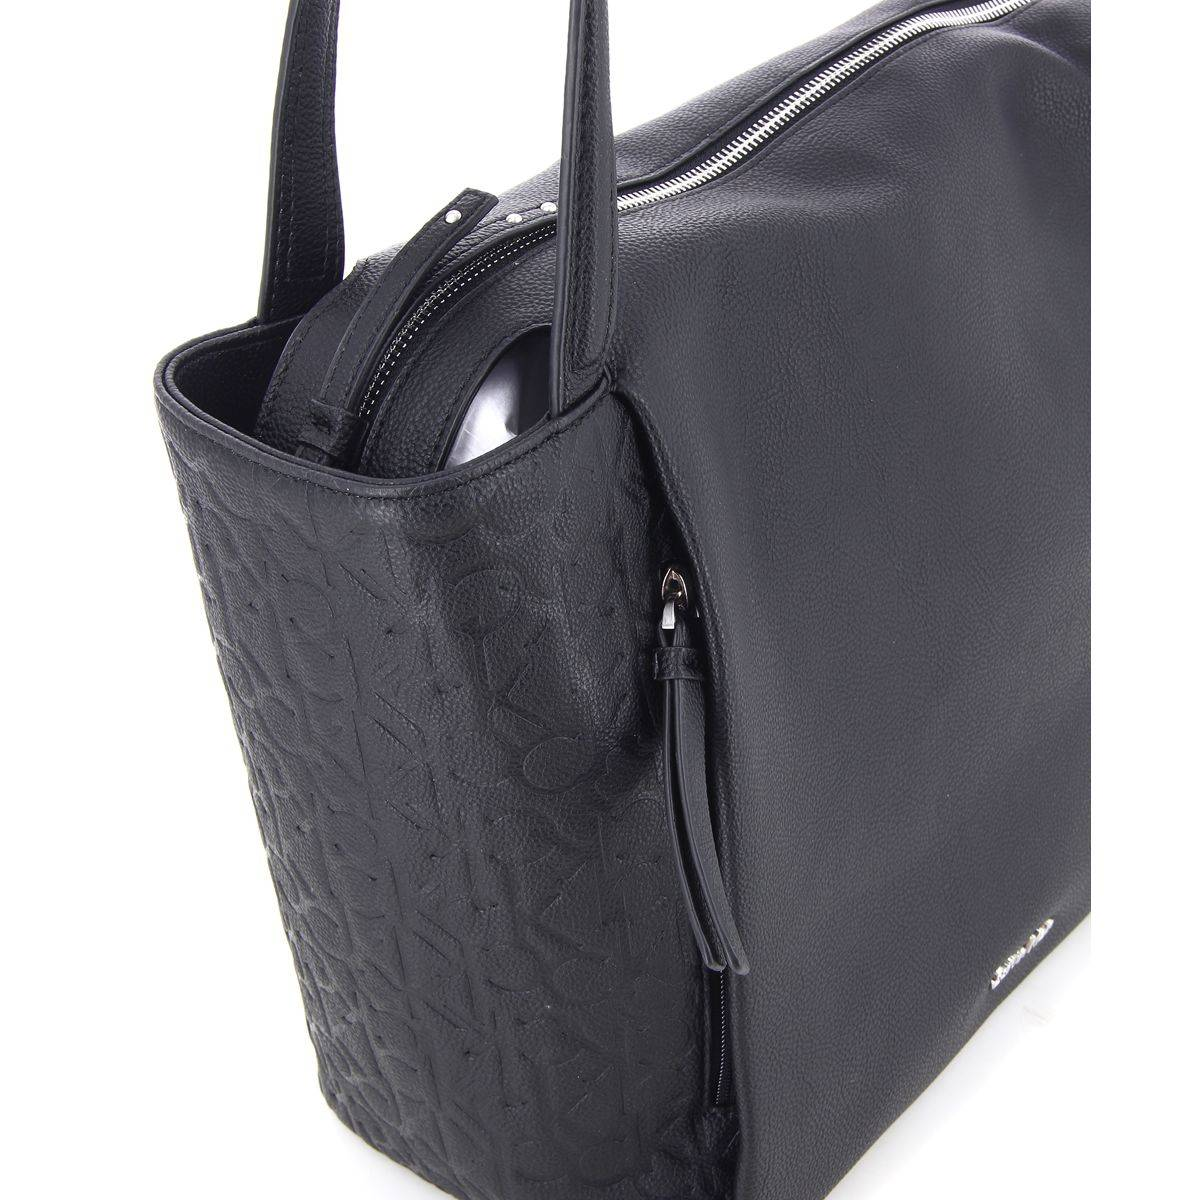 calvin klein sac main misha femme large tote k60k602120. Black Bedroom Furniture Sets. Home Design Ideas